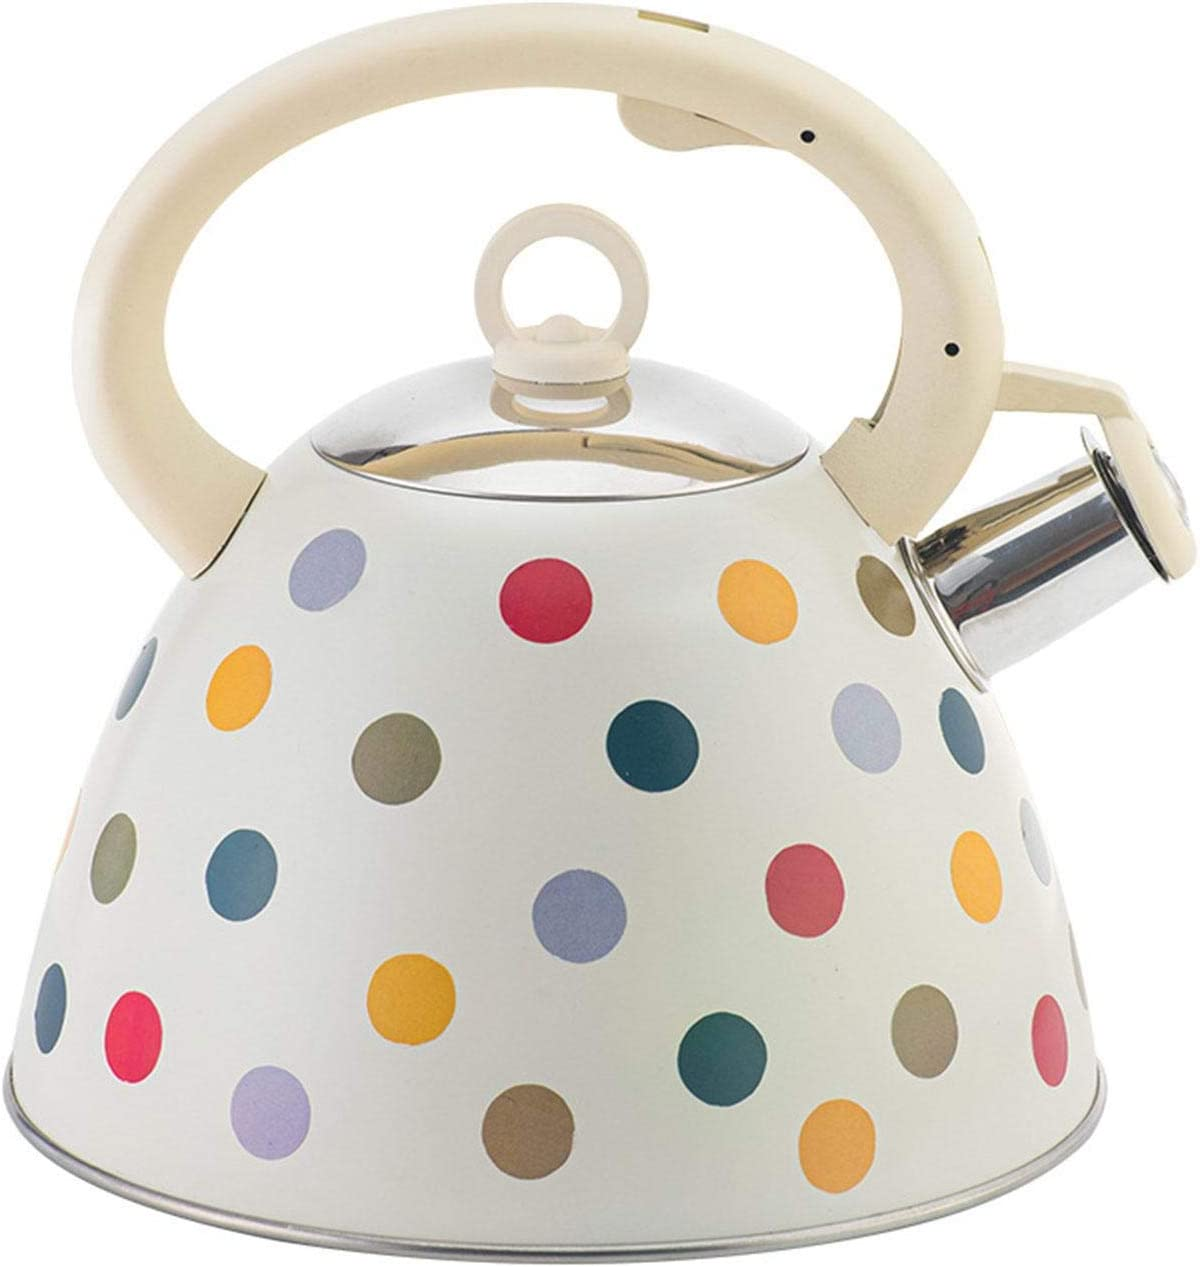 Summeishop Tea Be super welcome Kettles Stovetop Food Whis Stainless Grade Popularity Steel